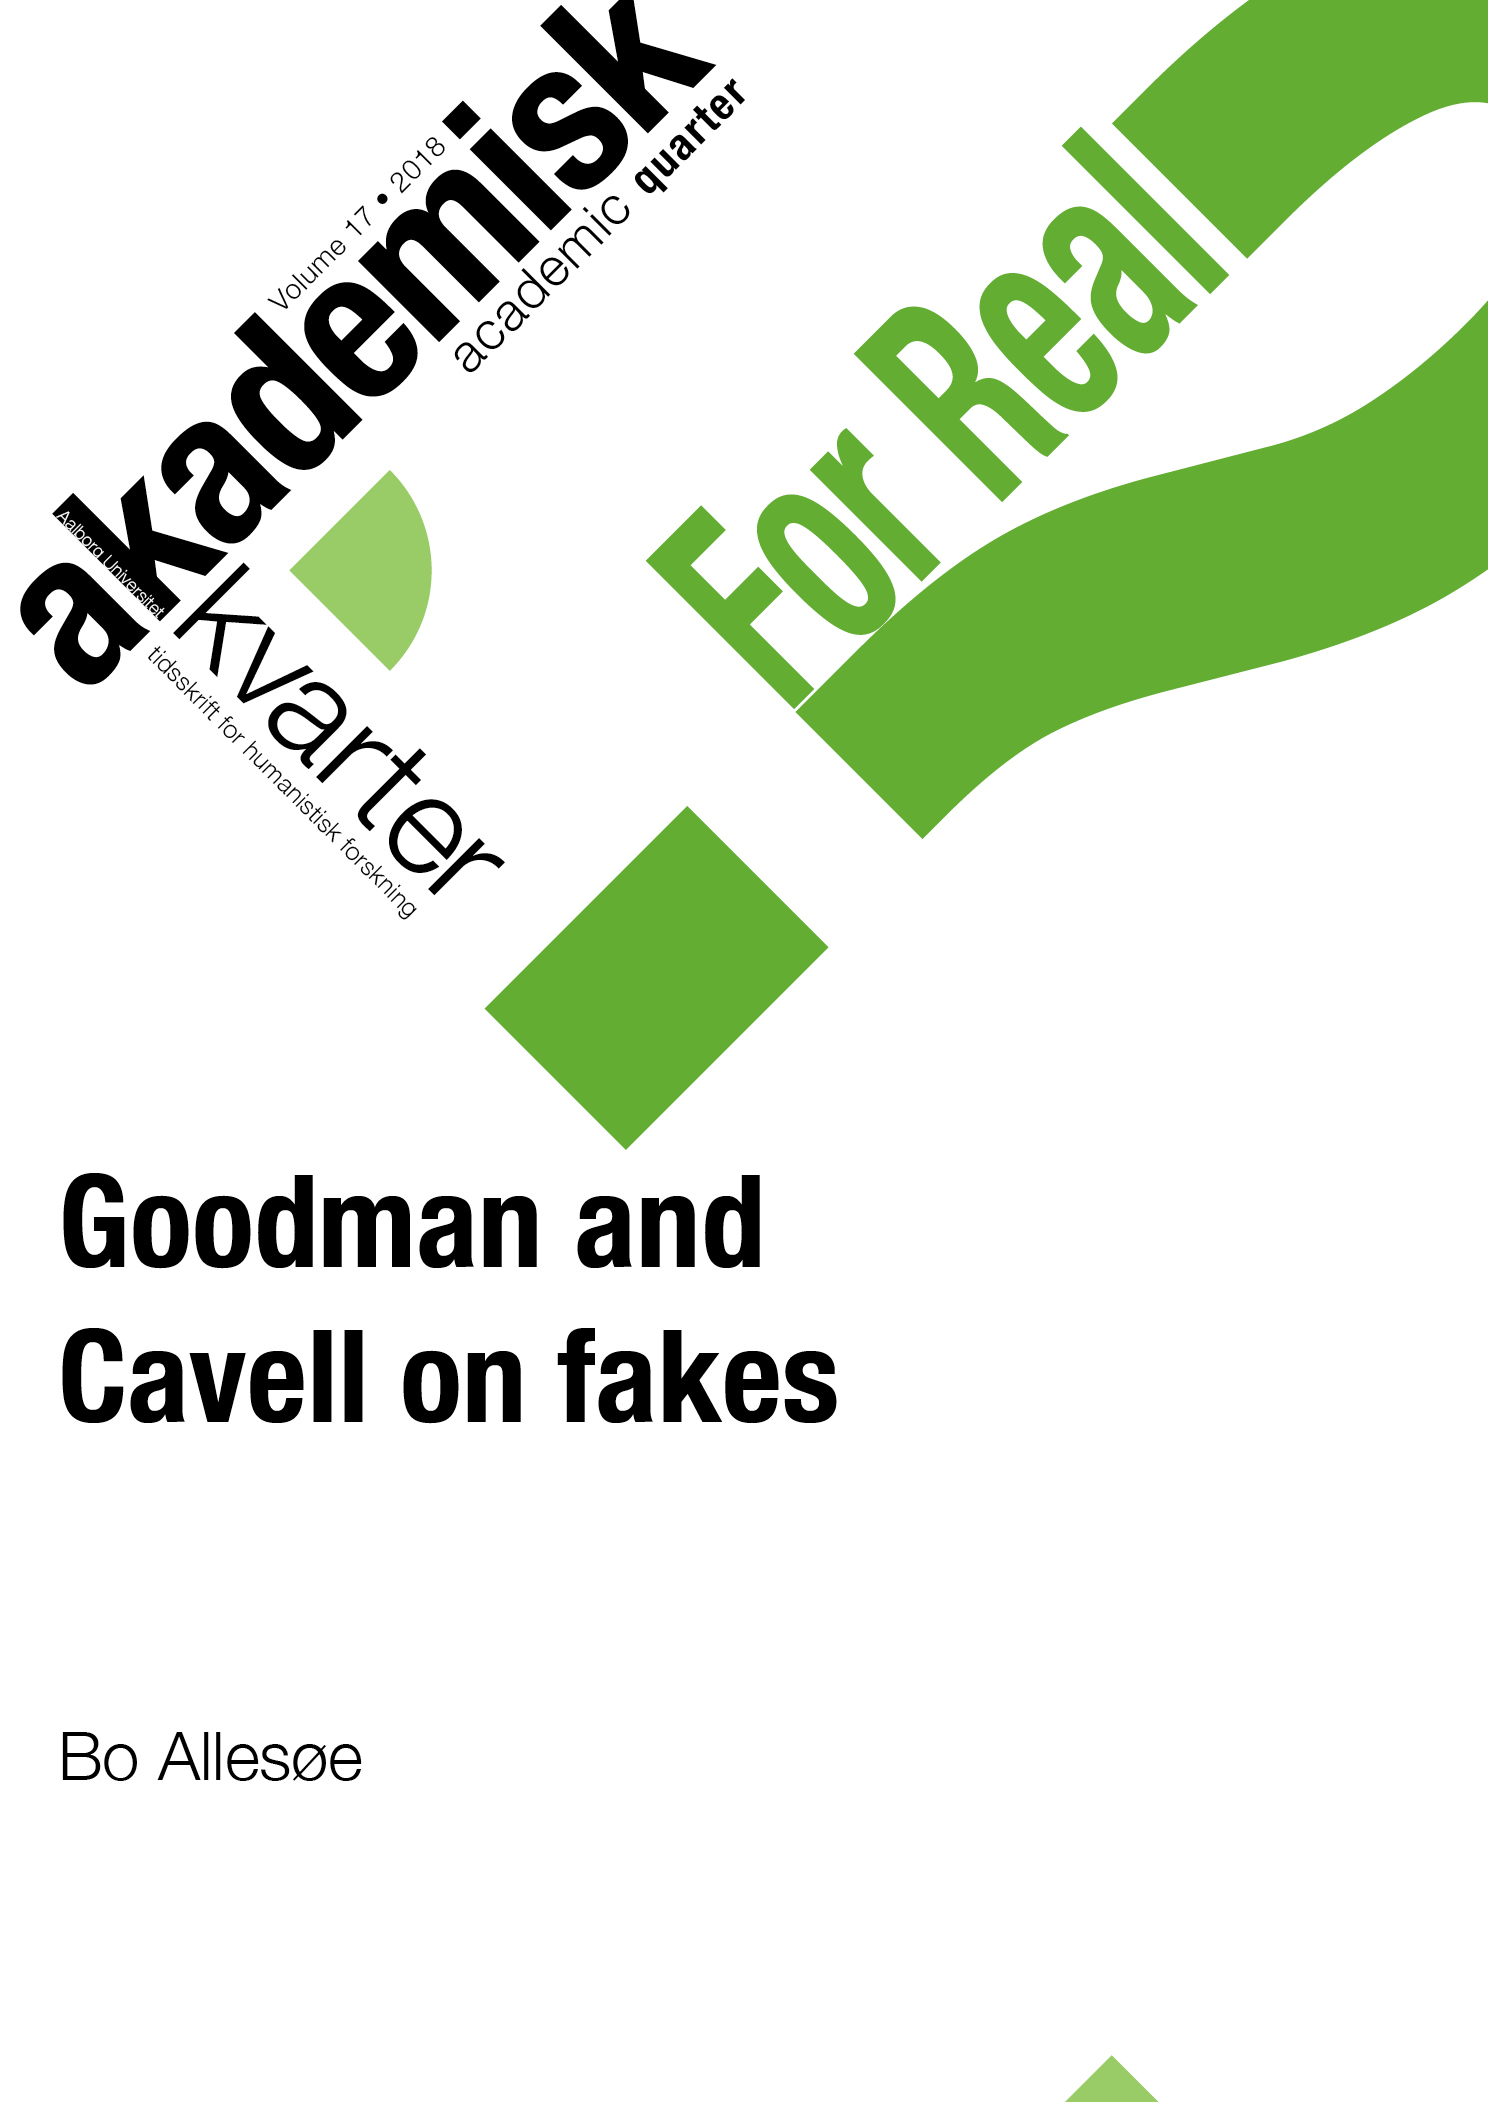 Goodman and Cavell on fakes